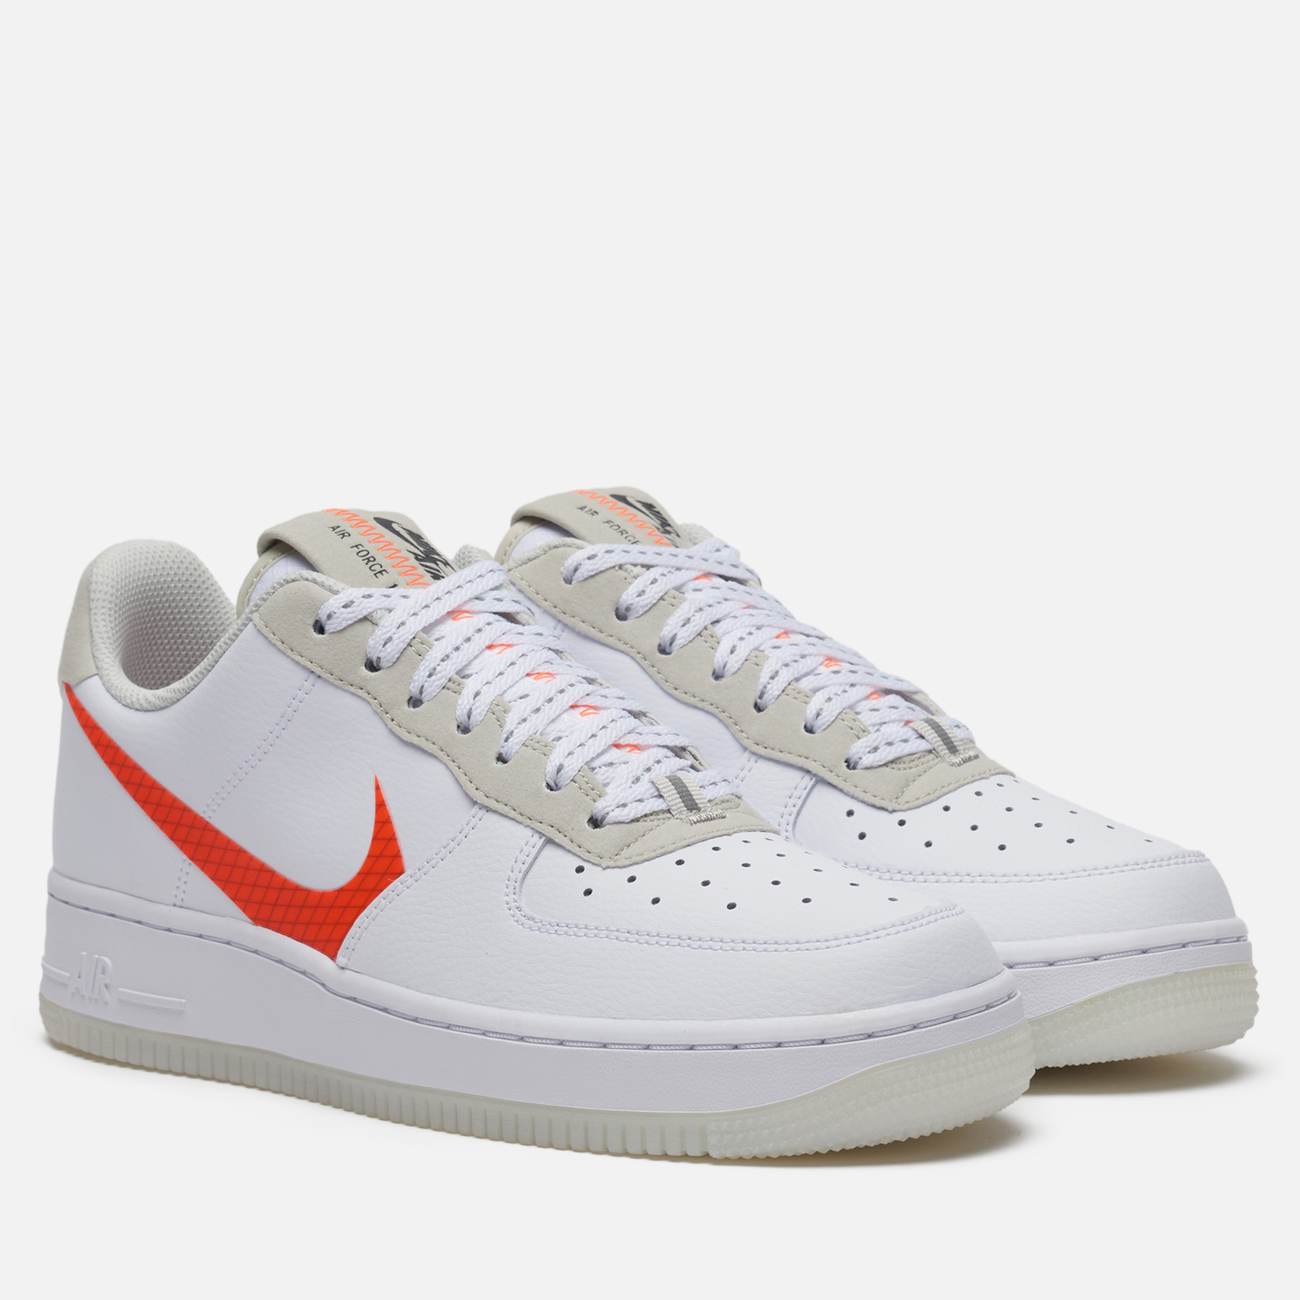 Мужские кроссовки Nike Air Force 1 '07 LV8 3 White/Total Orange/Summit White/Black